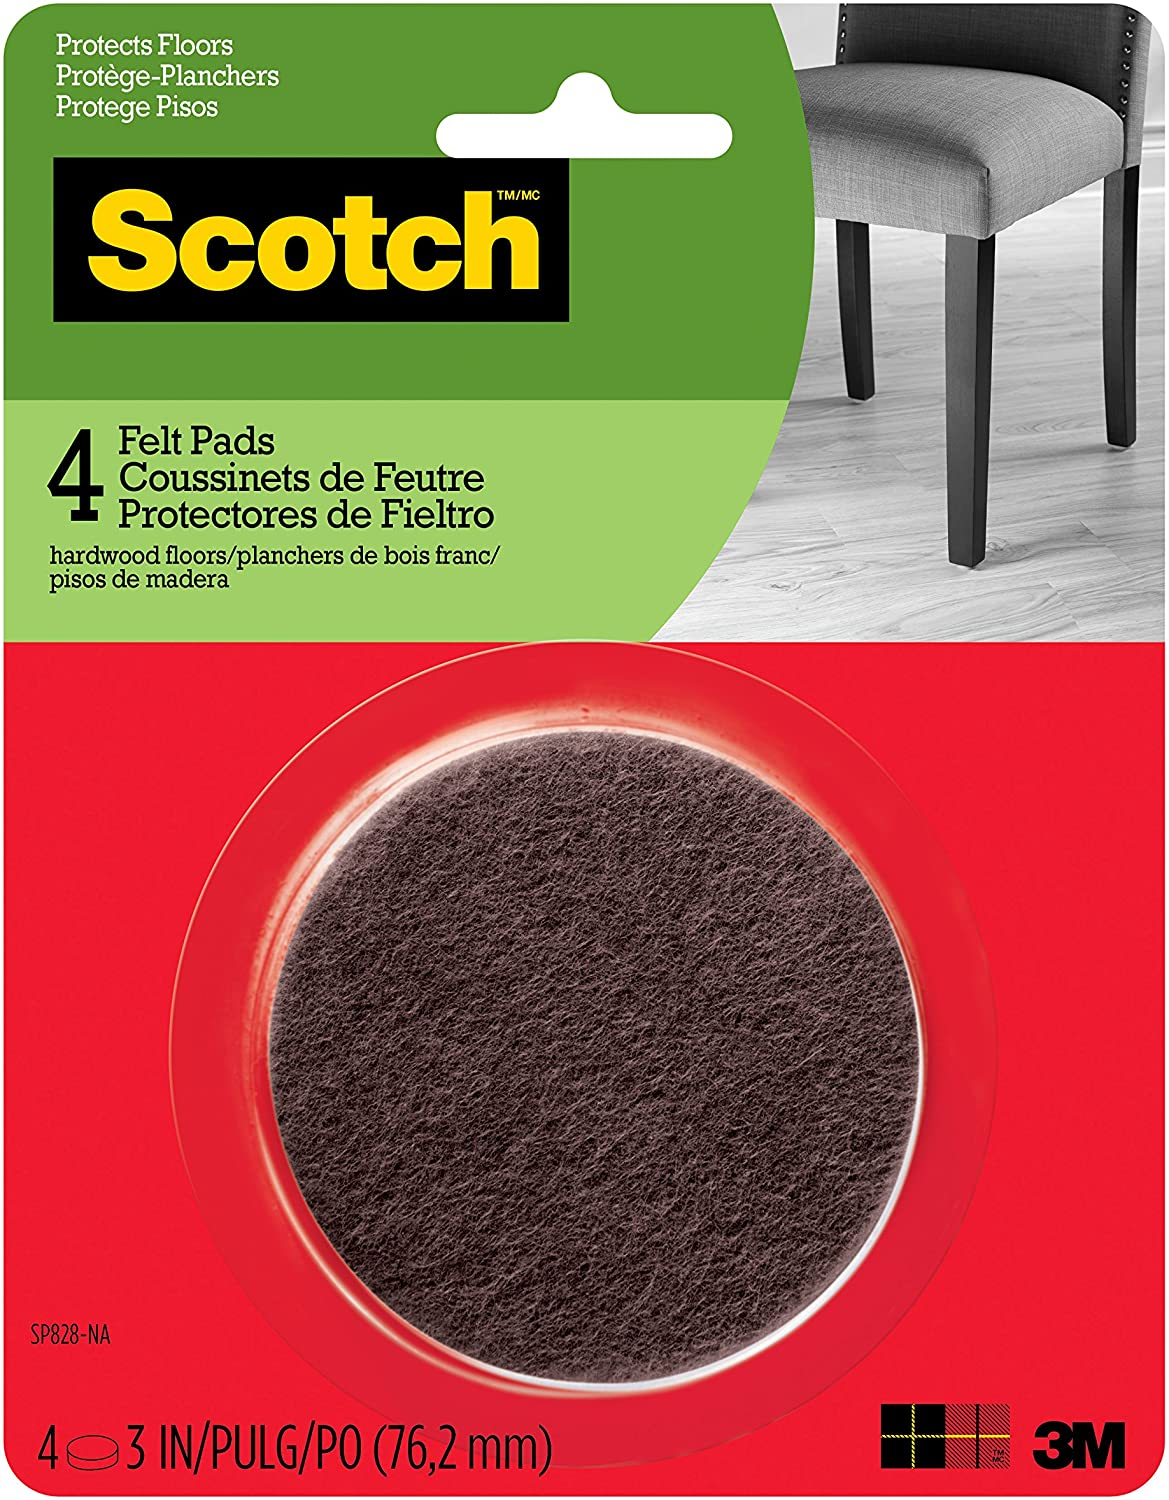 Scotch Mounting, Fastening & Surface Protection SP828-NA Scotch Felt Pads Round, 3 in. Diameter, Brown, 4/Pack